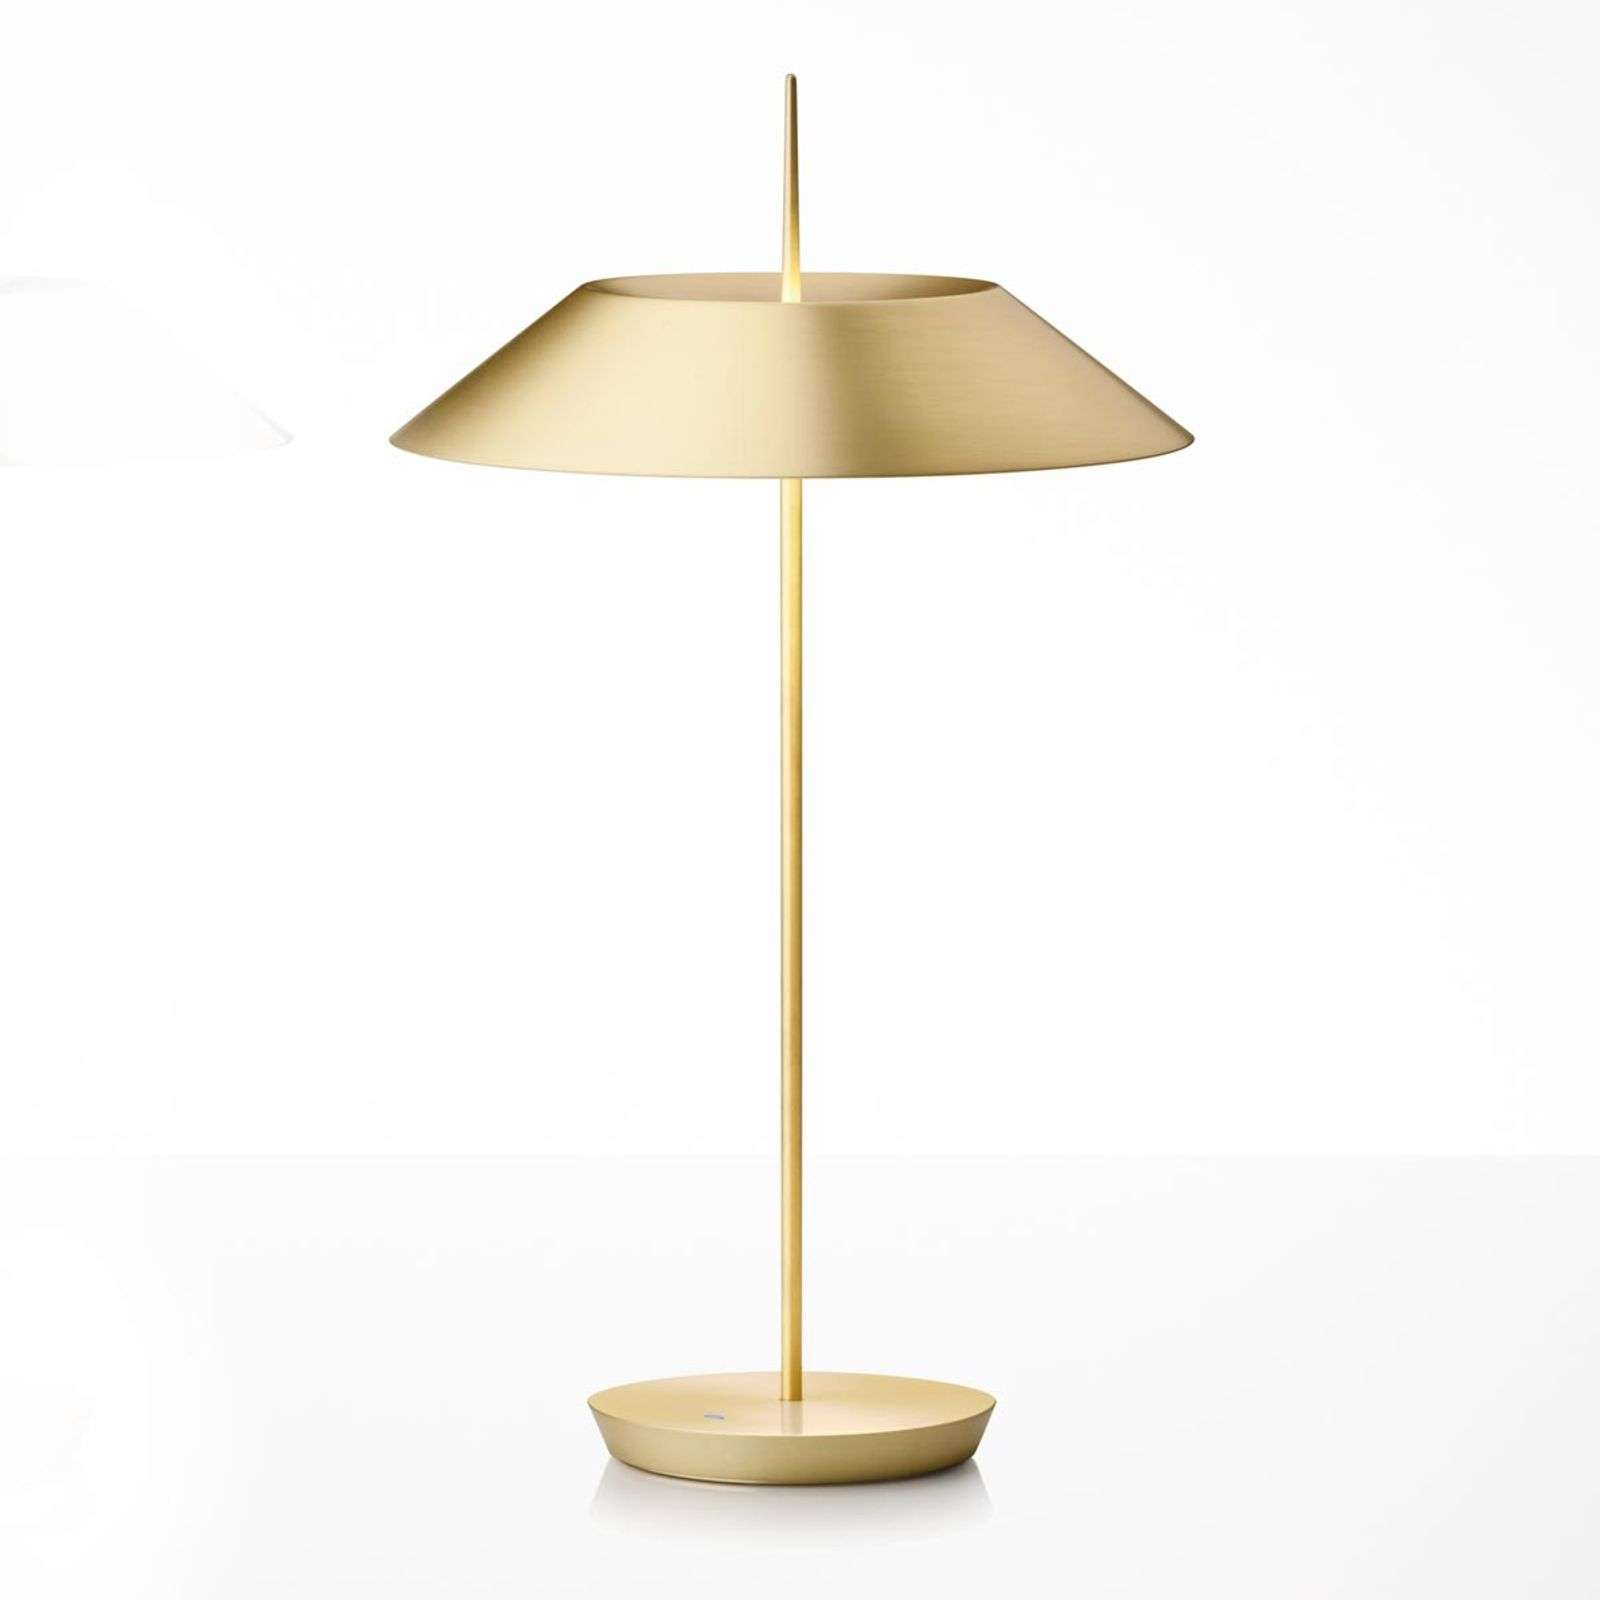 Vibia Mayfair lámpara LED de mesa, oro mate